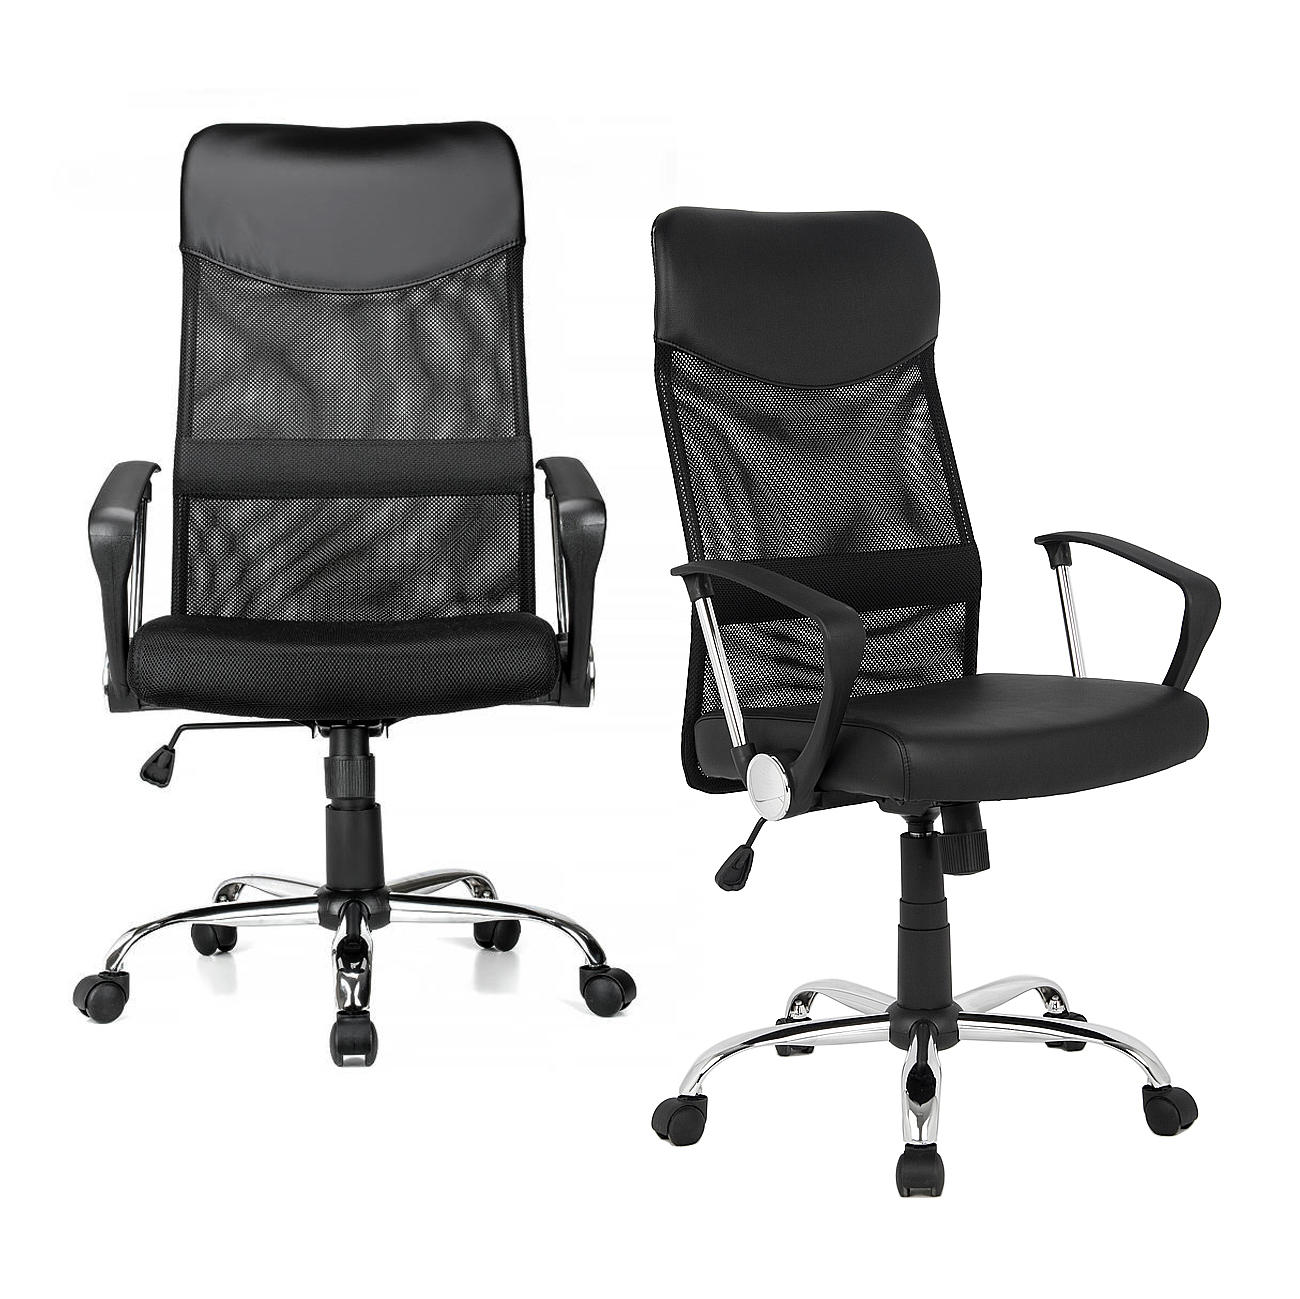 Adjustable Mesh Office Chair with Fixed Arms, High Back, Fabric Seat, Black - Moustache®